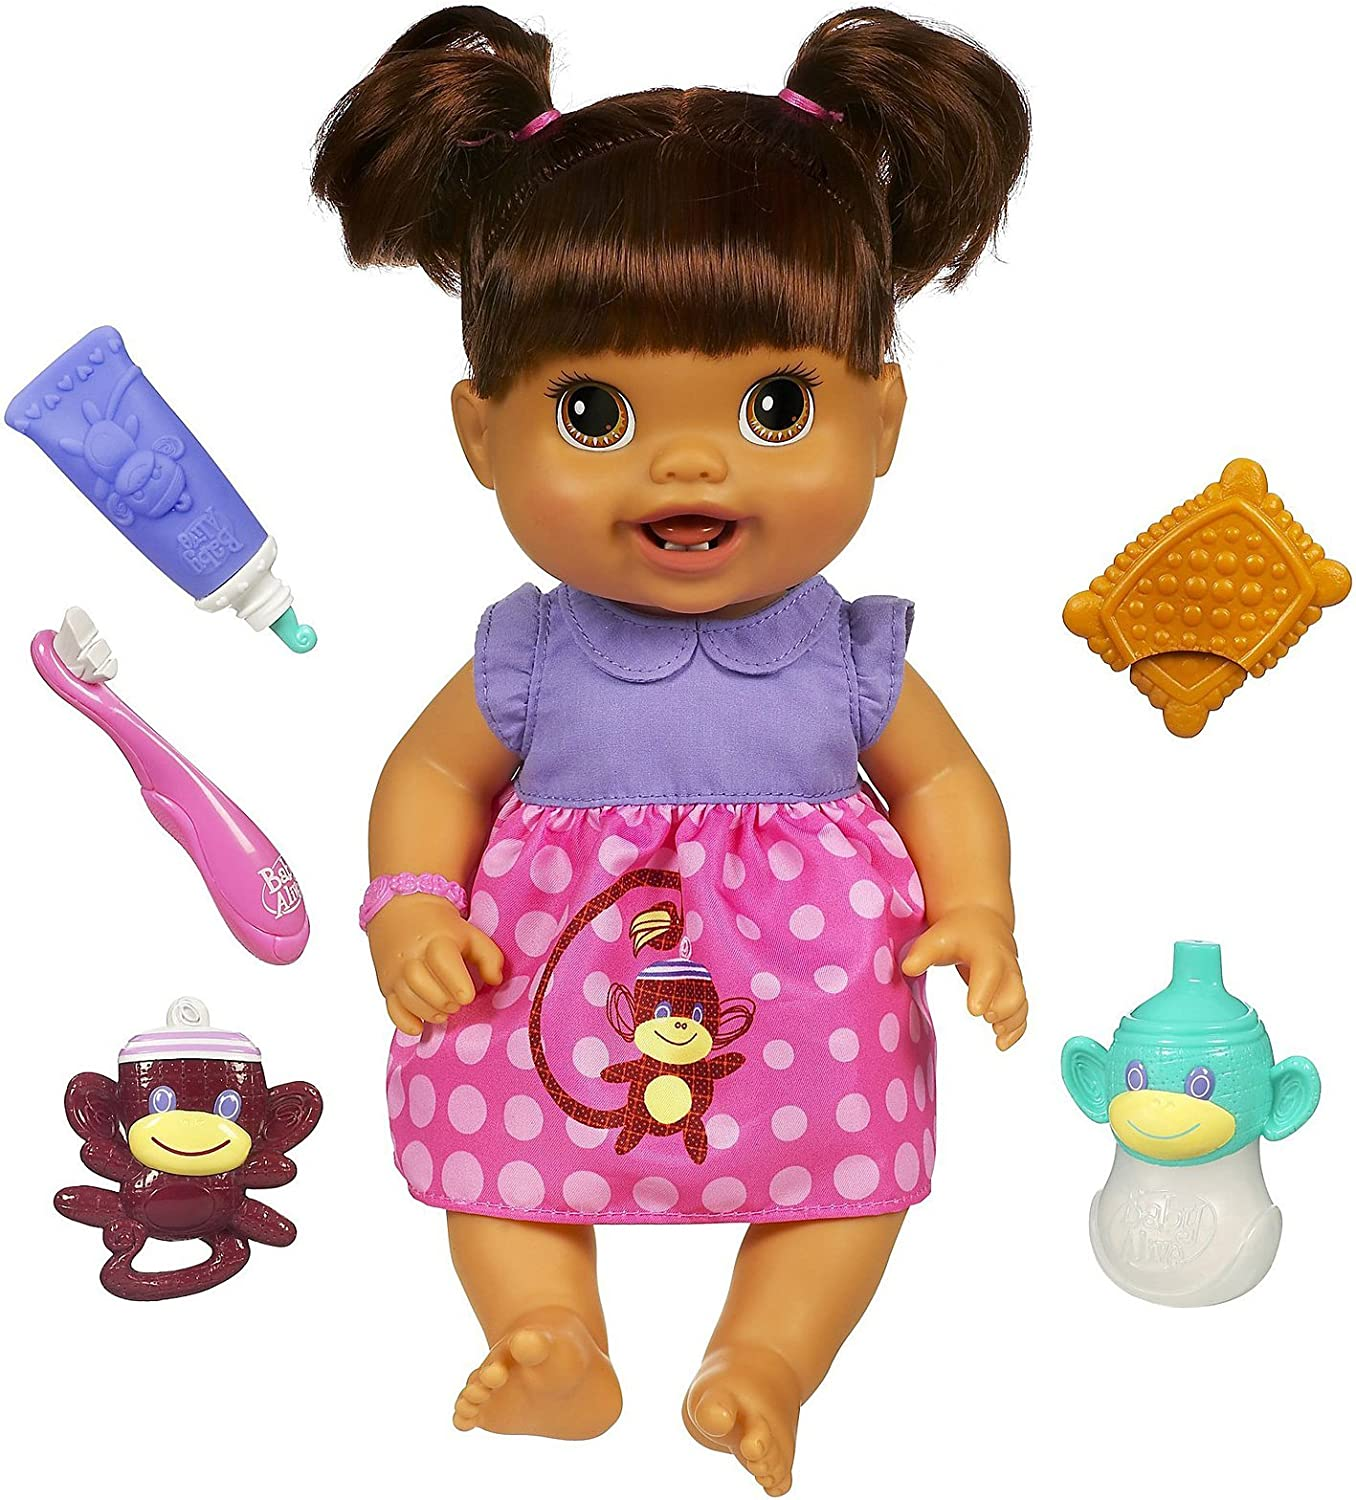 Amazon Com Baby Alive Baby S New Teeth Brunette Styles May Vary Toys Games